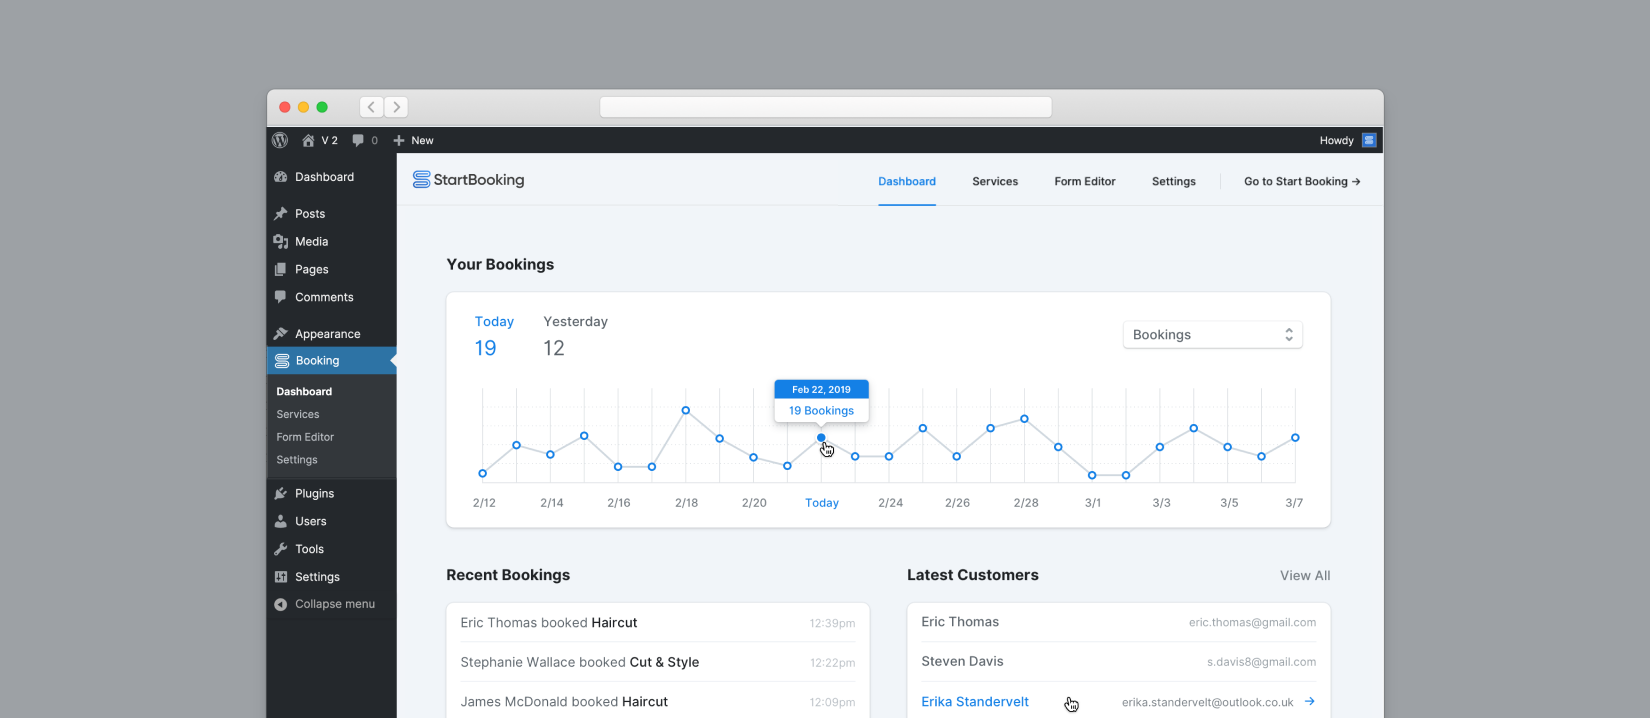 The team here at Start Booking has been heads down for the last 3 months giving our WordPress booking plugin a major update that we think you are going to love! The previous version (1.x) was a good learning lesson for us. With this new release we have assembled your feedback and paired it with […]